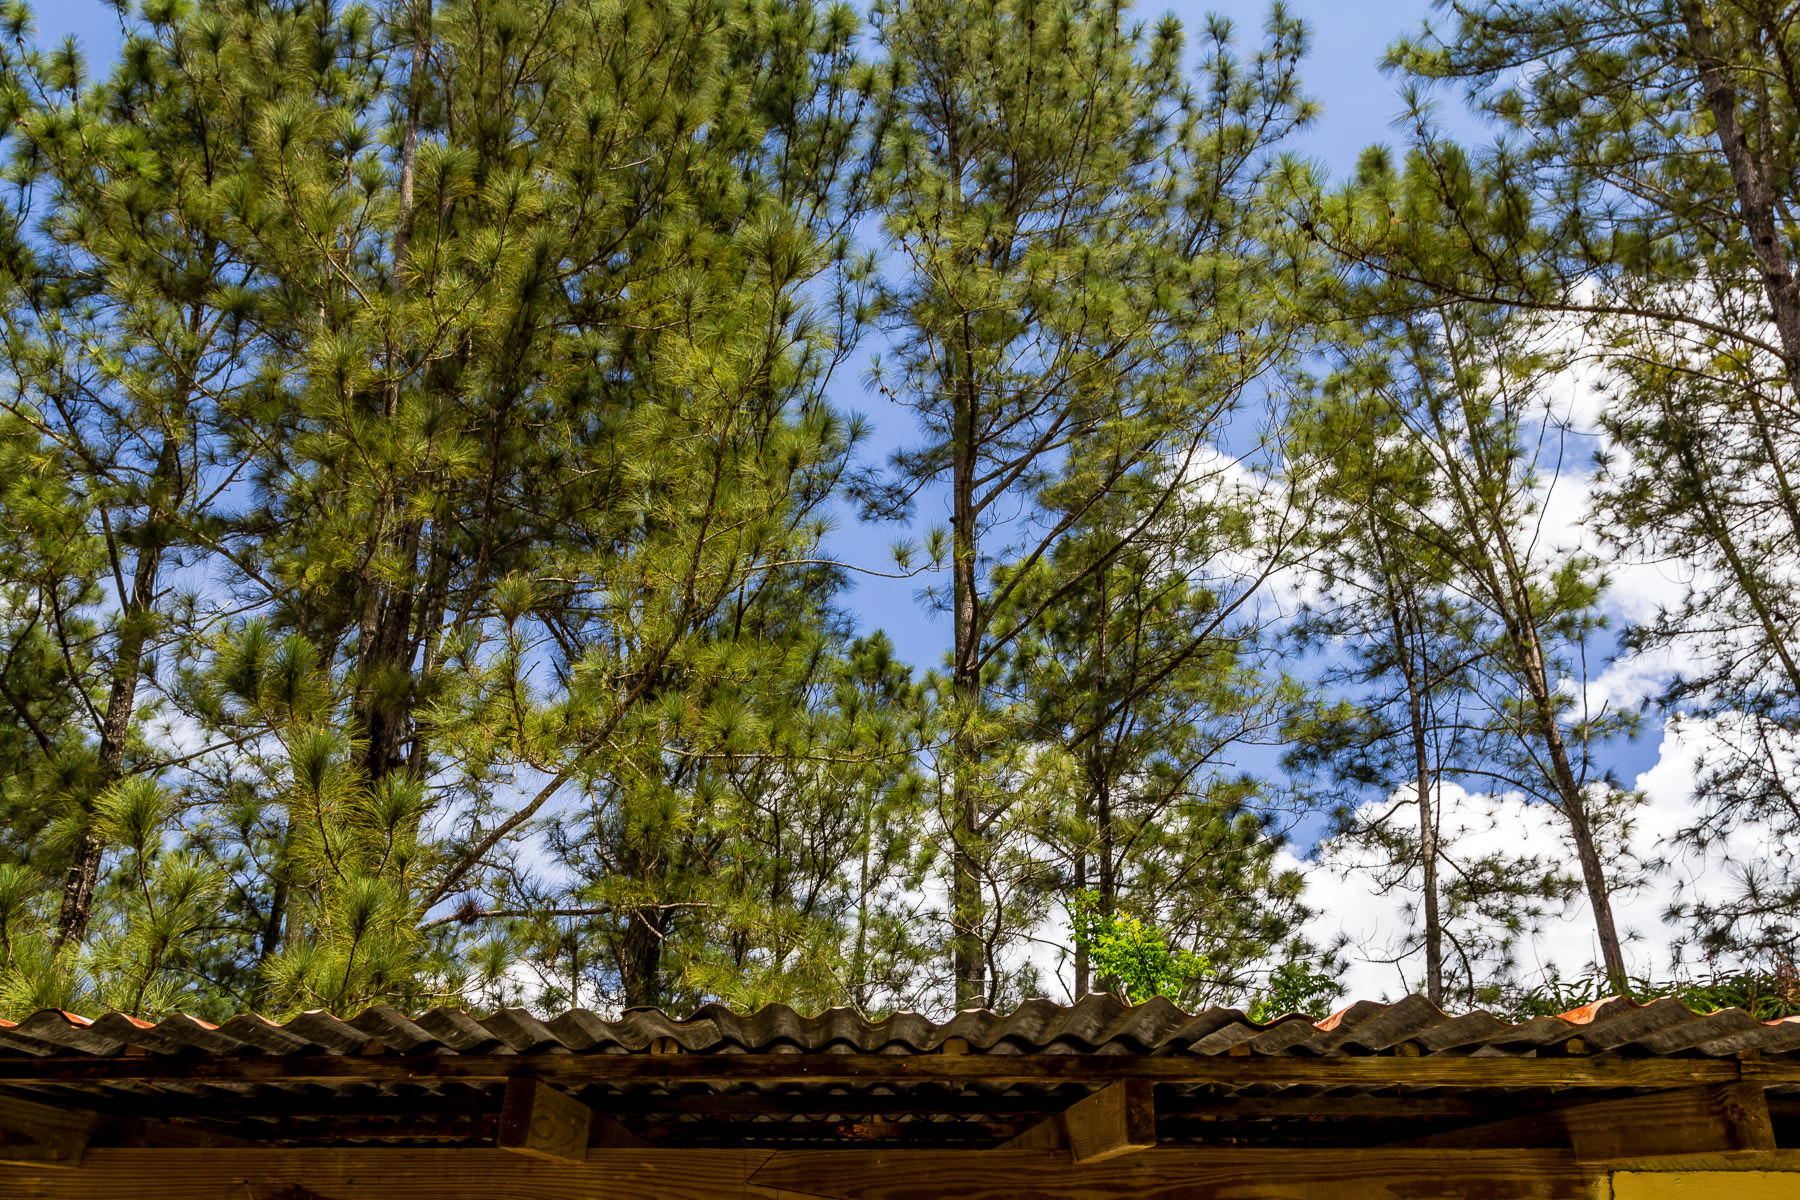 Pine trees rise above the corrugated metal roof of a barn at the Croydon in the Mountains plantation in northwest Jamaica.